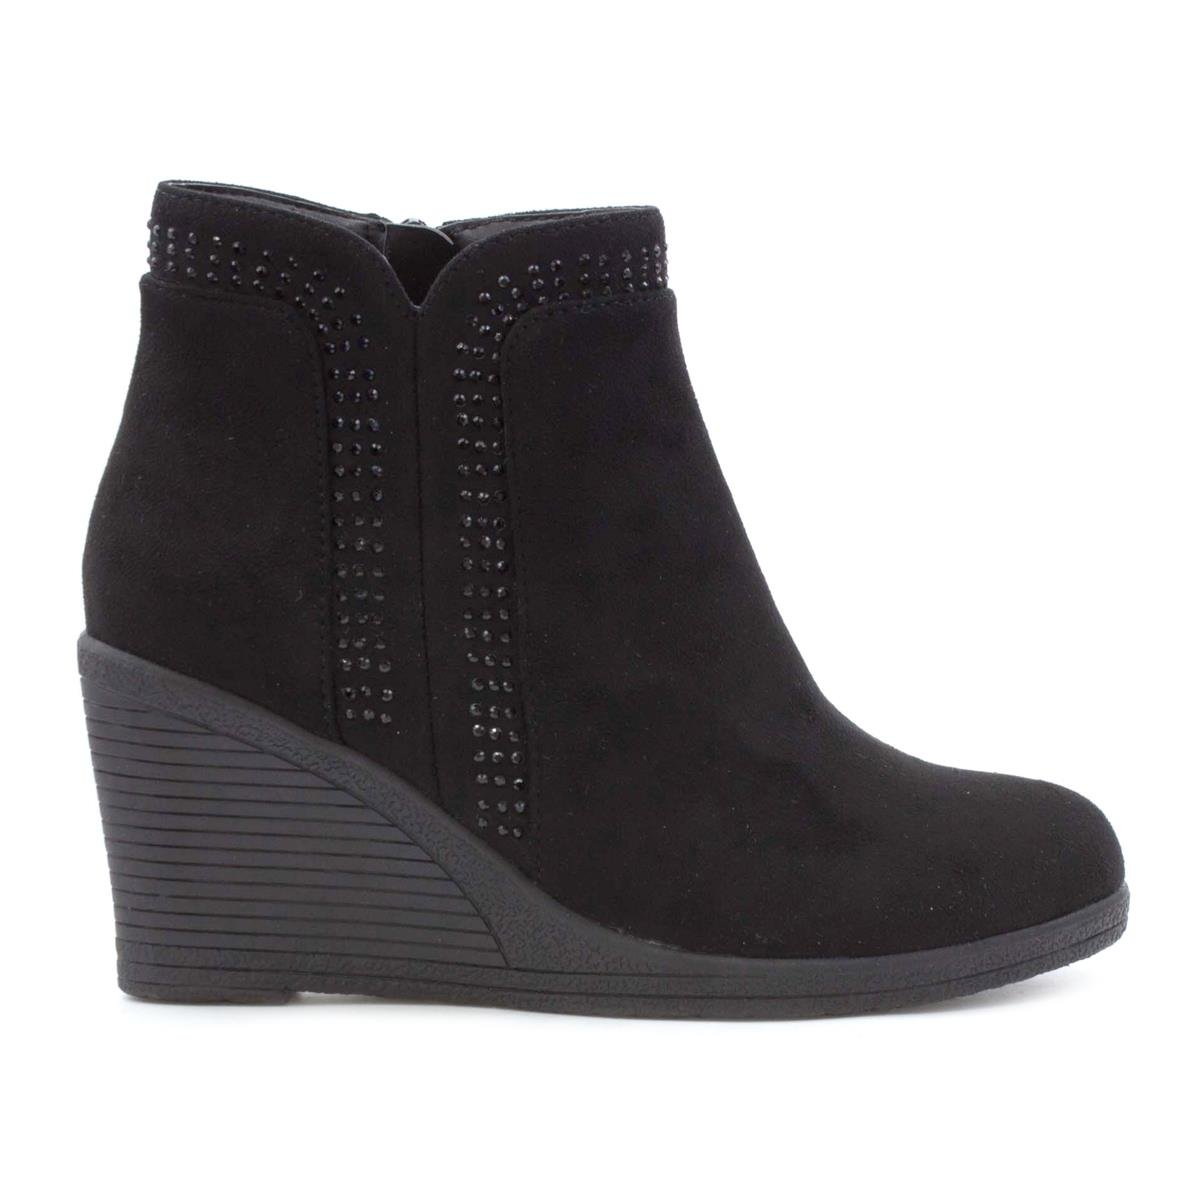 dress - Lilley Womens Black Buckle Detail Ankle Boot-18640 video